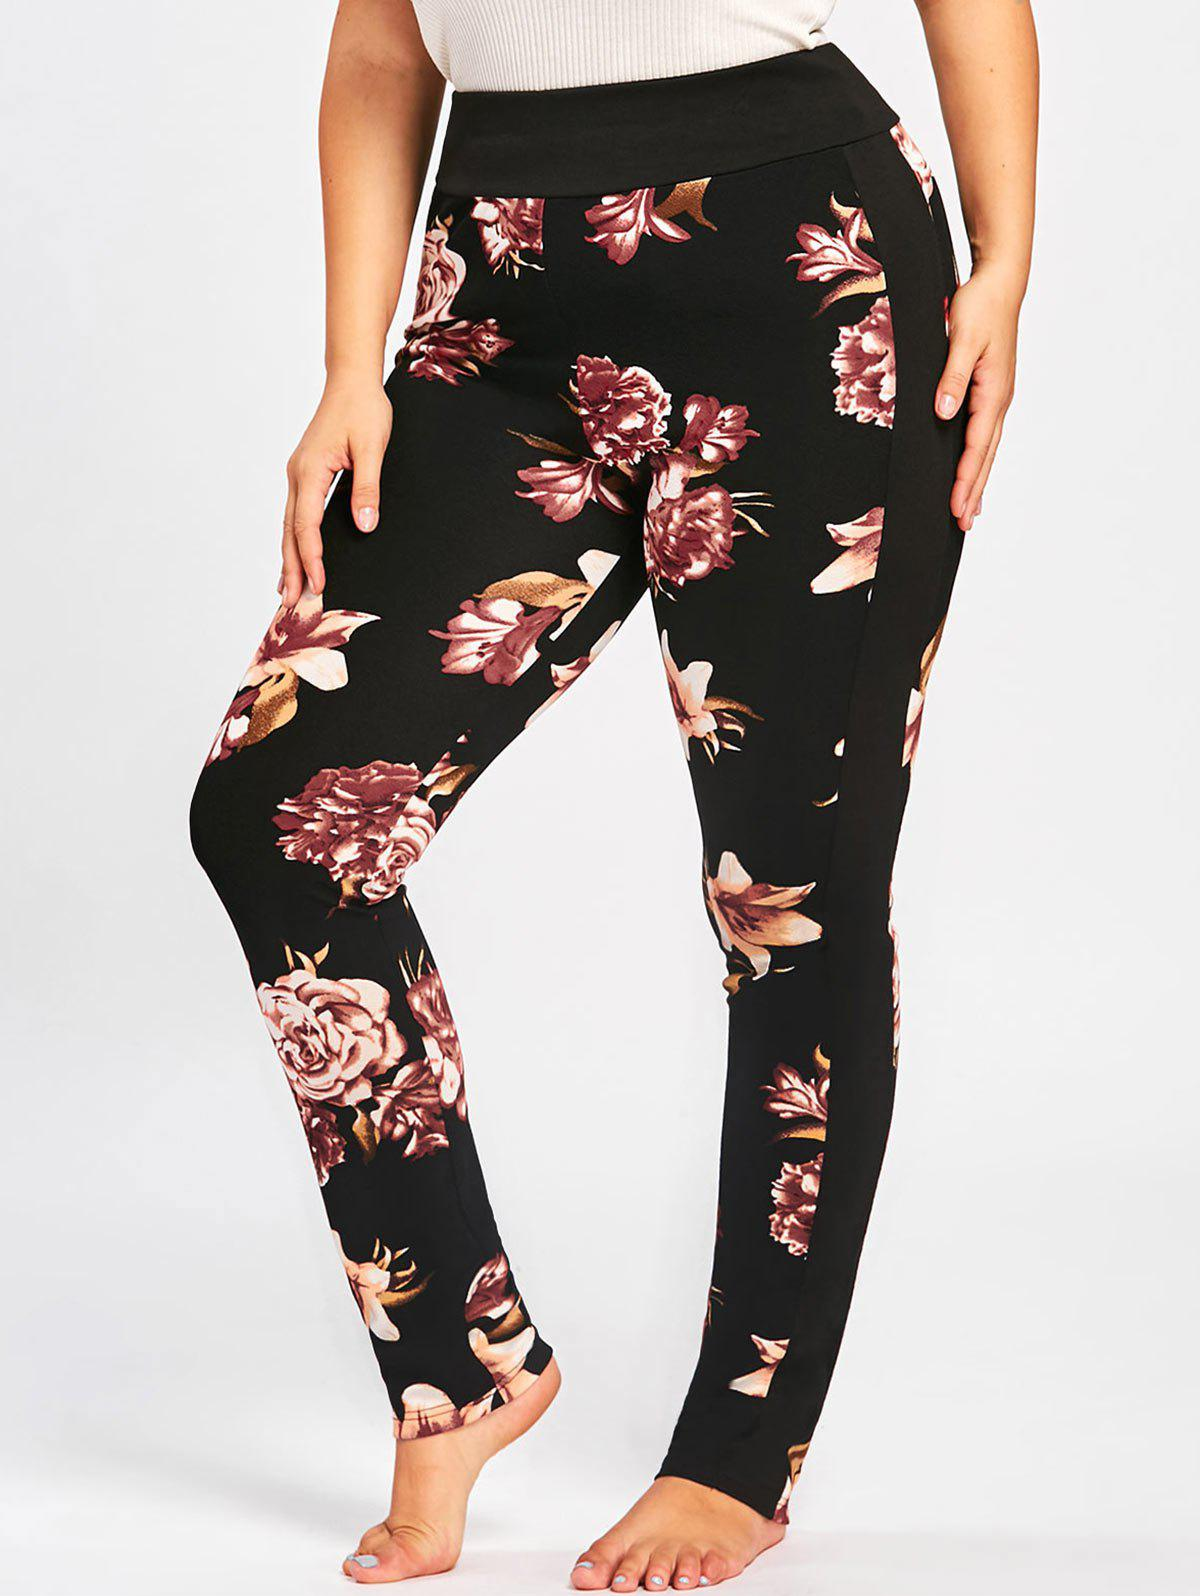 Plus Size Floral Skinny PantsWOMEN<br><br>Size: 3XL; Color: BLACK; Style: Casual; Length: Normal; Material: Polyester,Spandex; Fit Type: Skinny; Waist Type: High; Closure Type: Elastic Waist; Pattern Type: Floral; Pant Style: Pencil Pants; Weight: 0.3000kg; Package Contents: 1 x Pants;